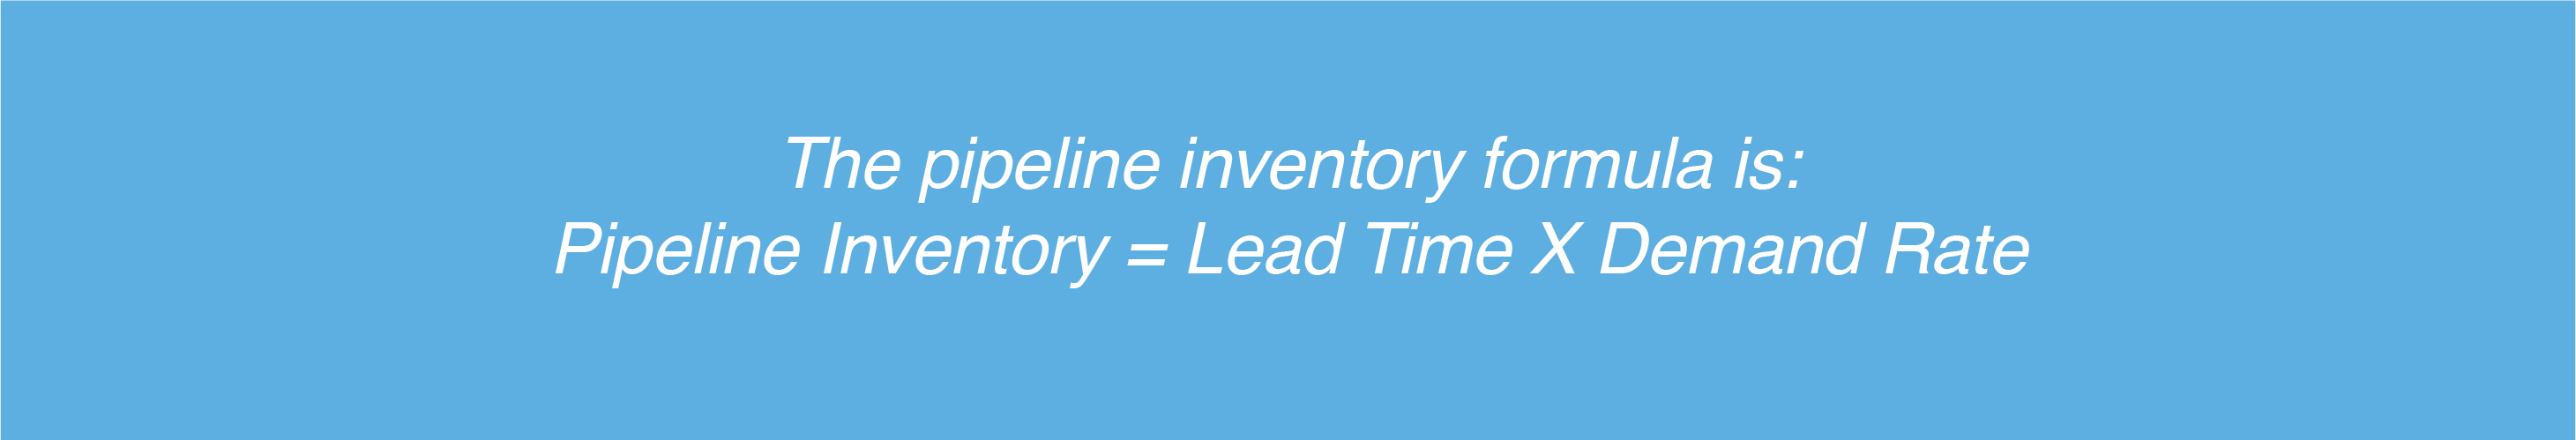 how to calculate pipeline inventory